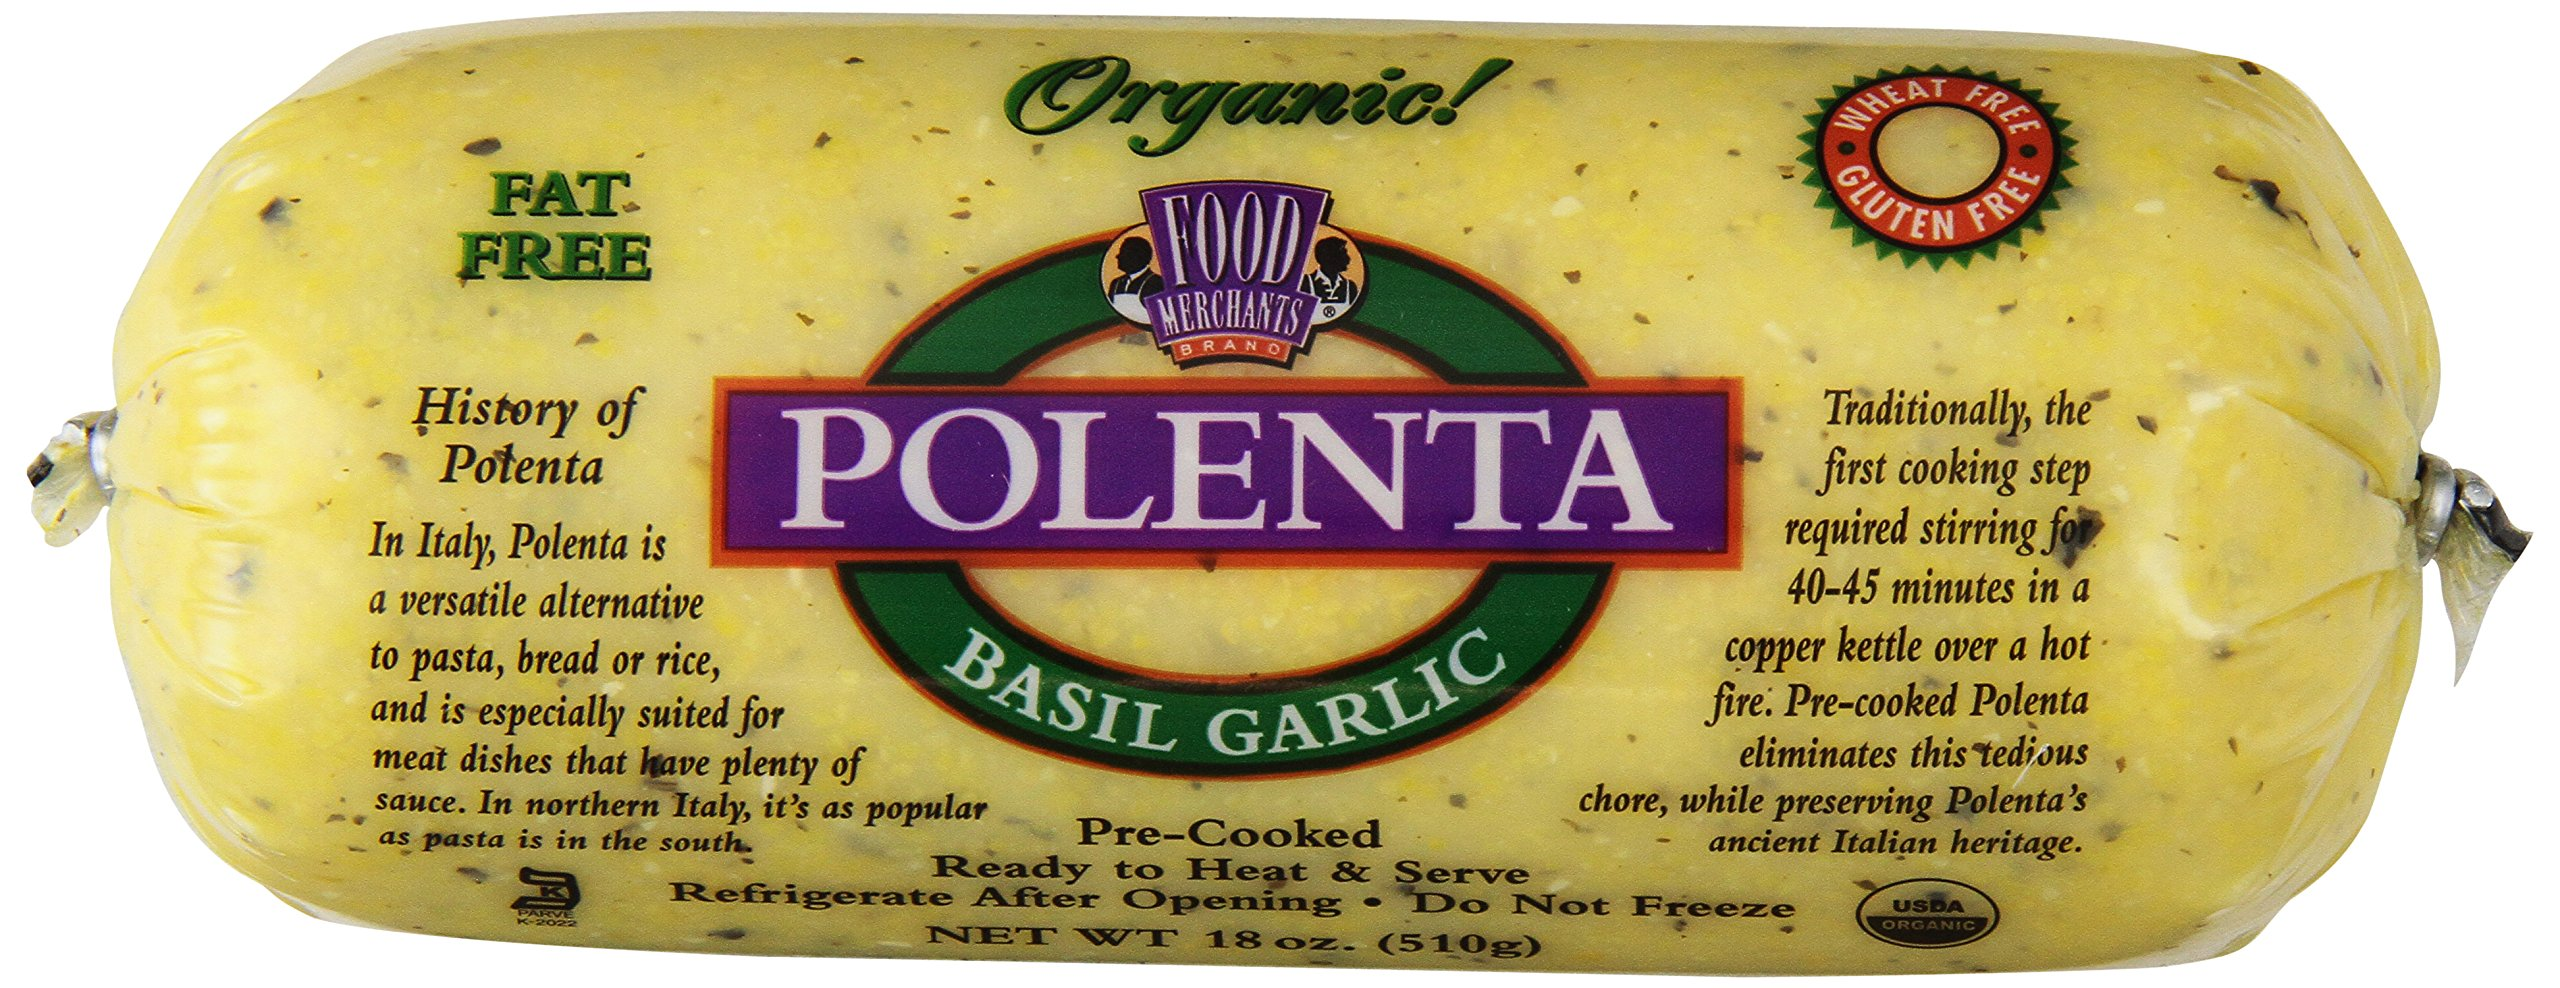 Food Merchants Organic Polenta, Basil Garlic, 18 Ounce (Pack of 12)